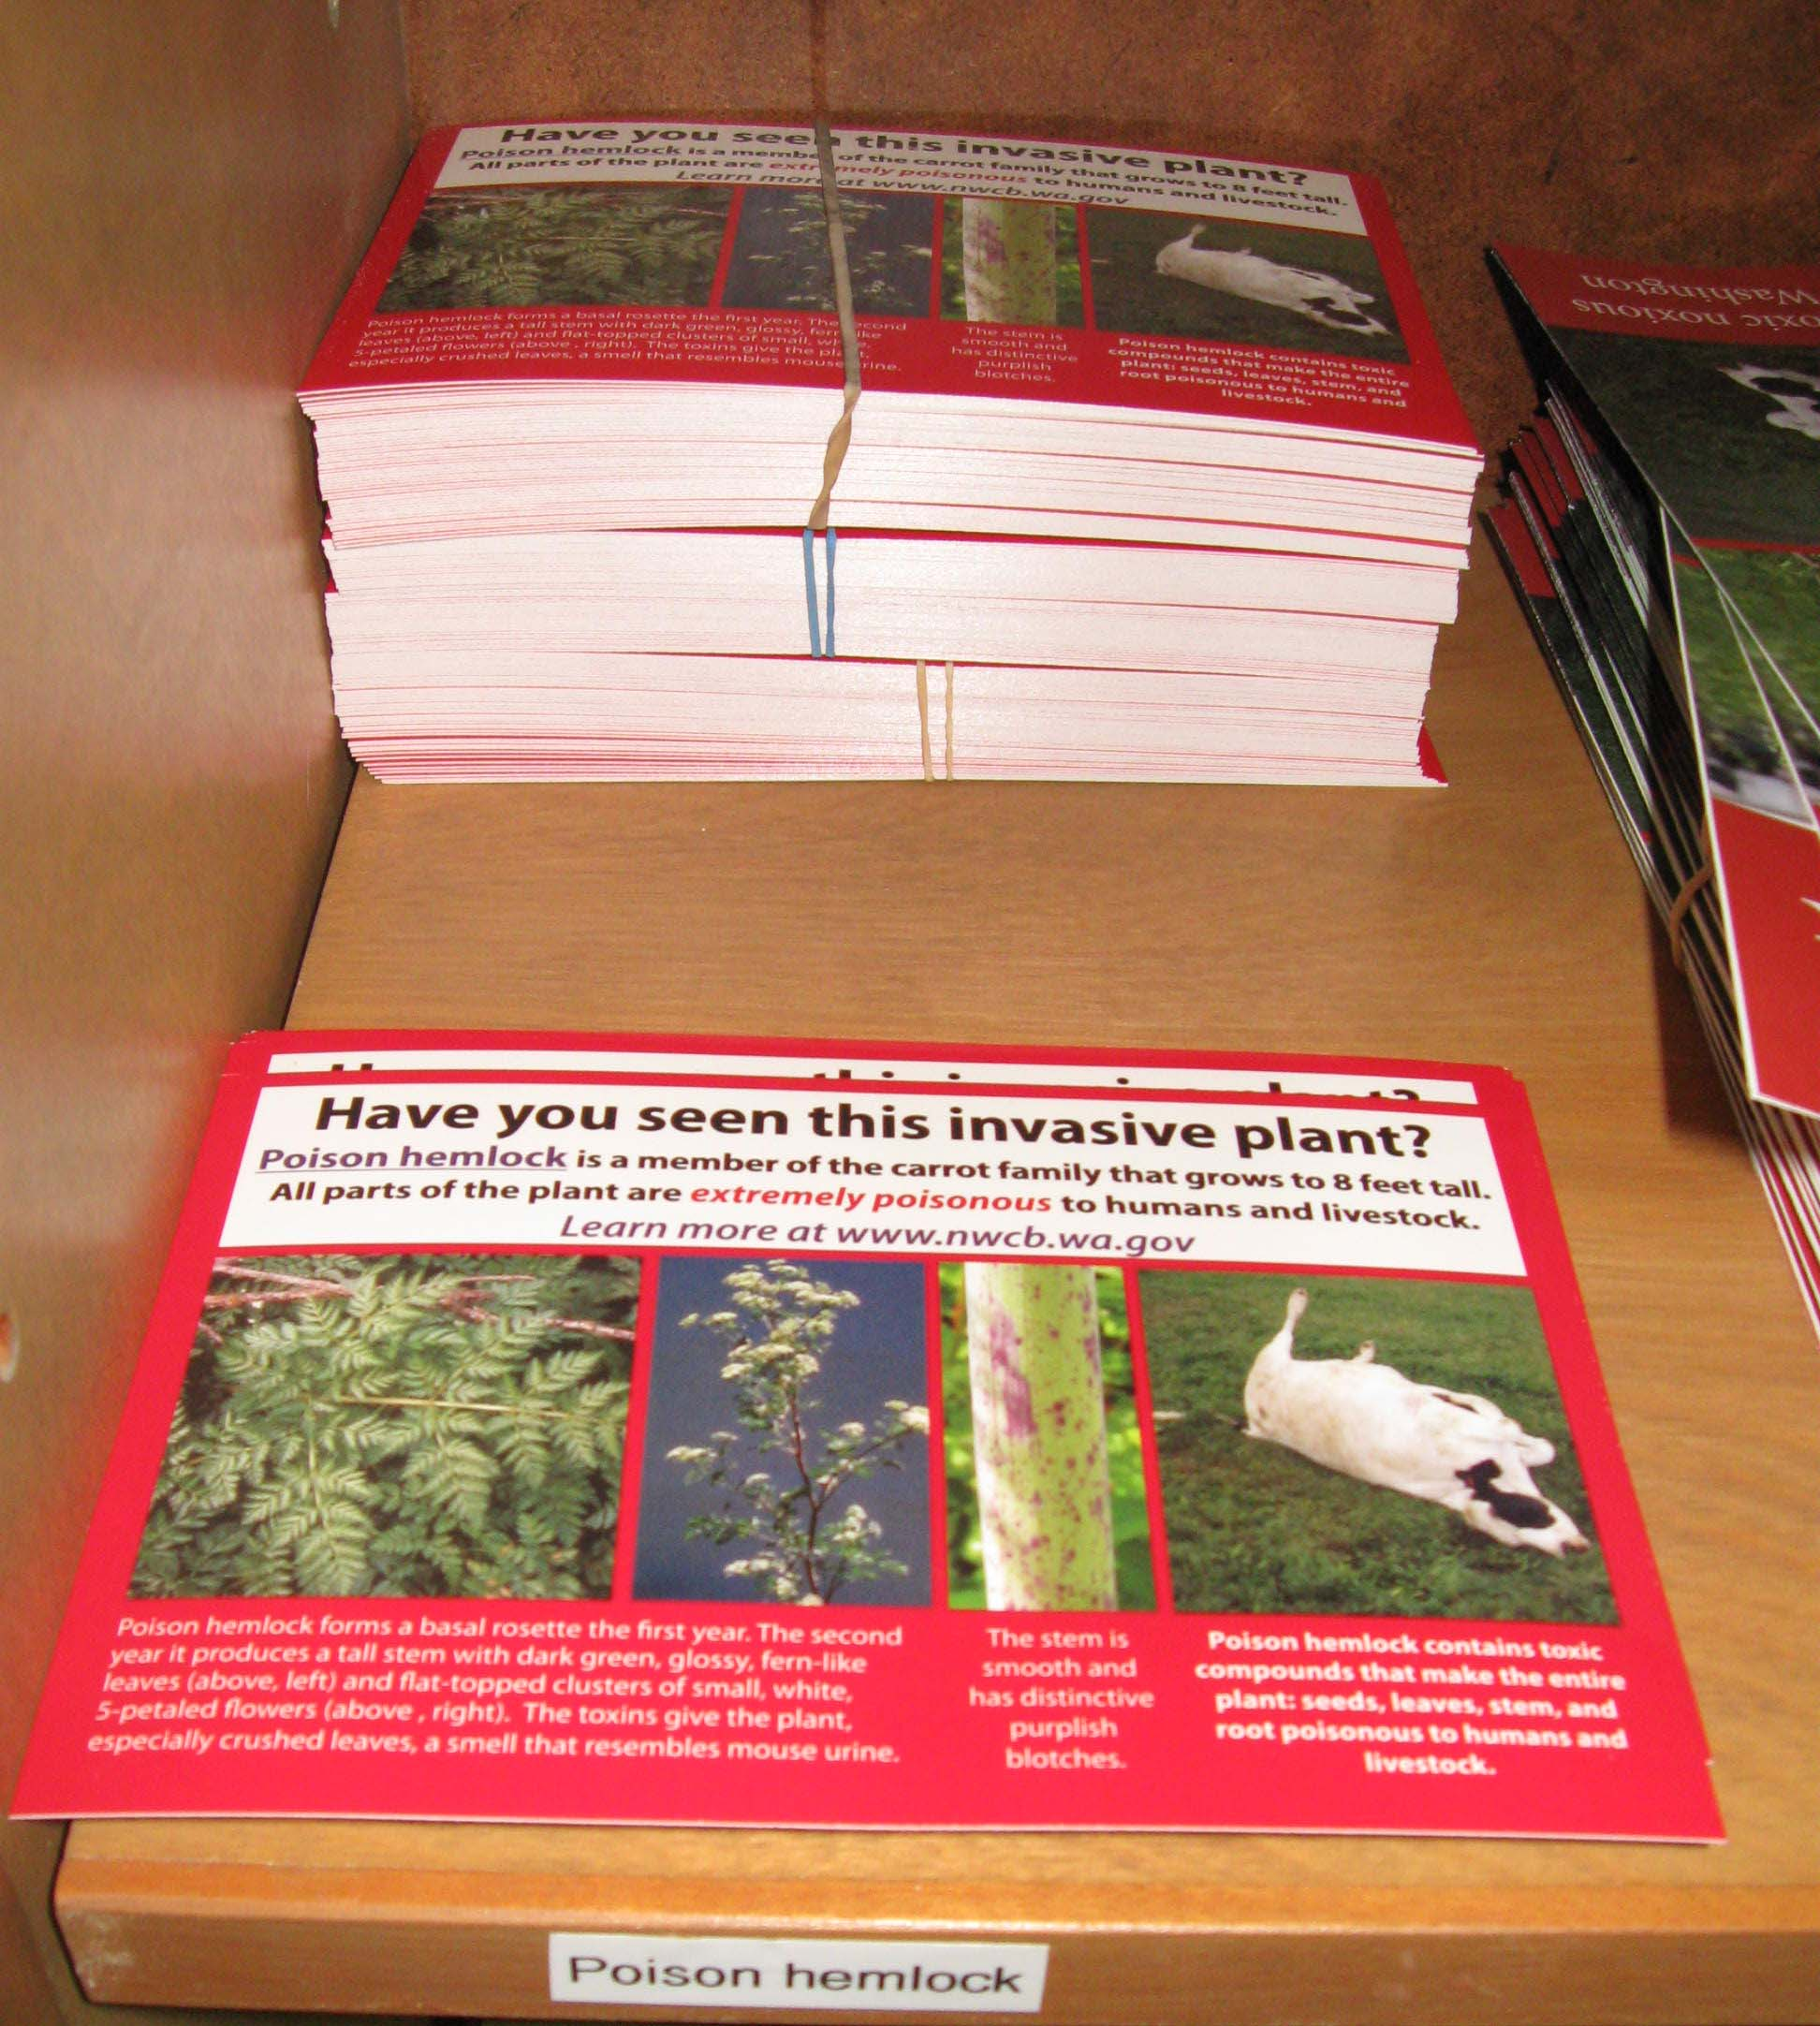 Poison hemlock postcards